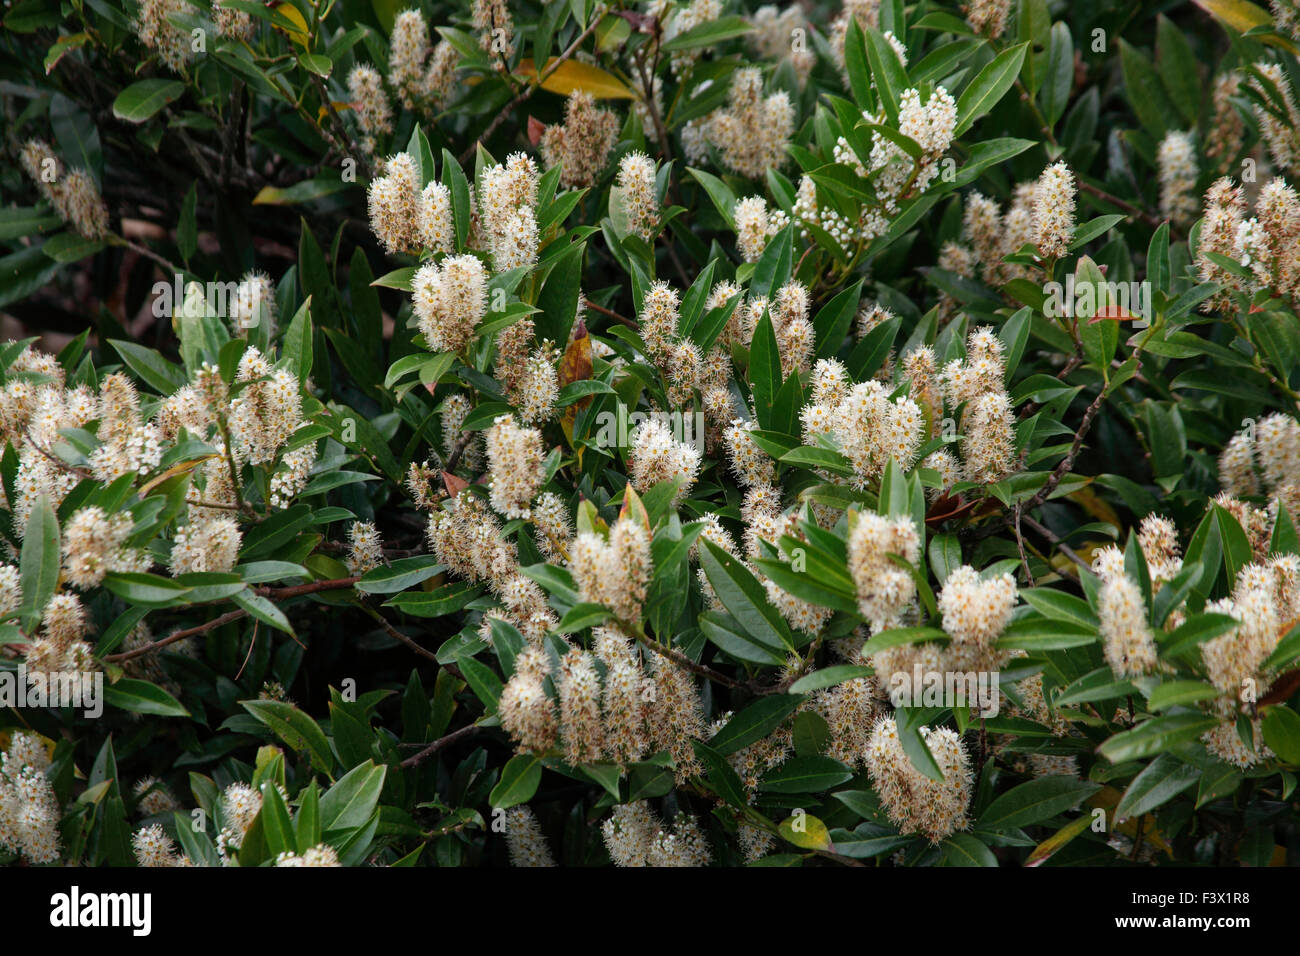 Prunus laurocerasus  'Otto Luyken' shrub in flower - Stock Image